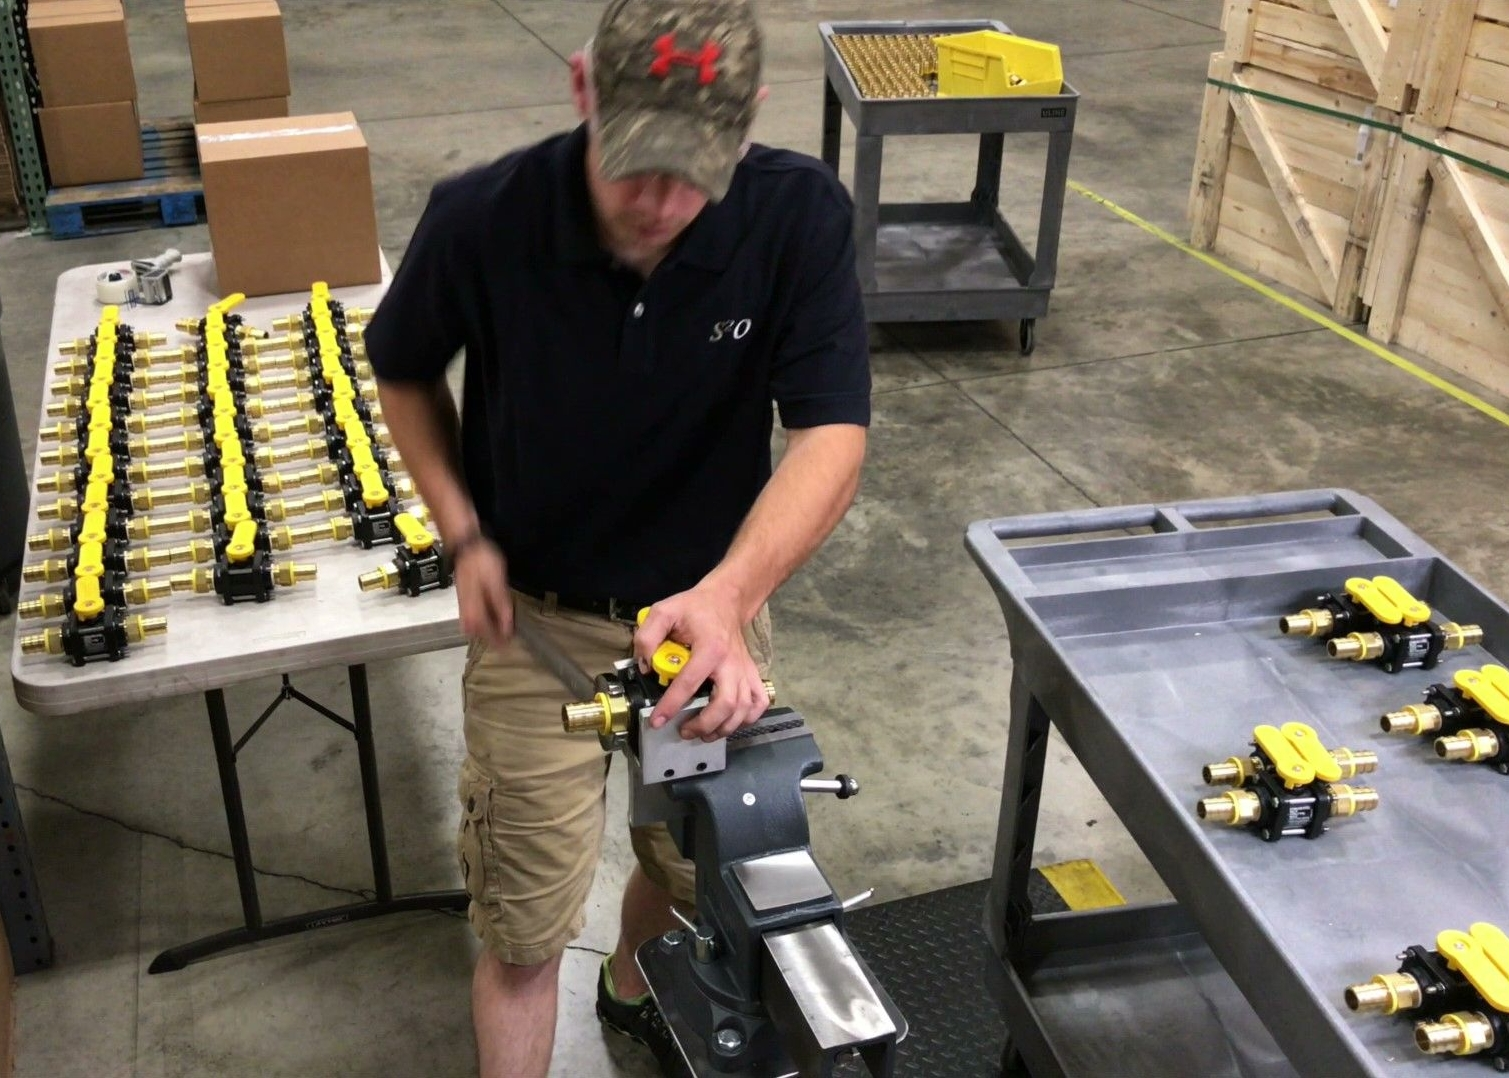 Subassembly Services for Manufacturers - Supply Source Options in Michigan